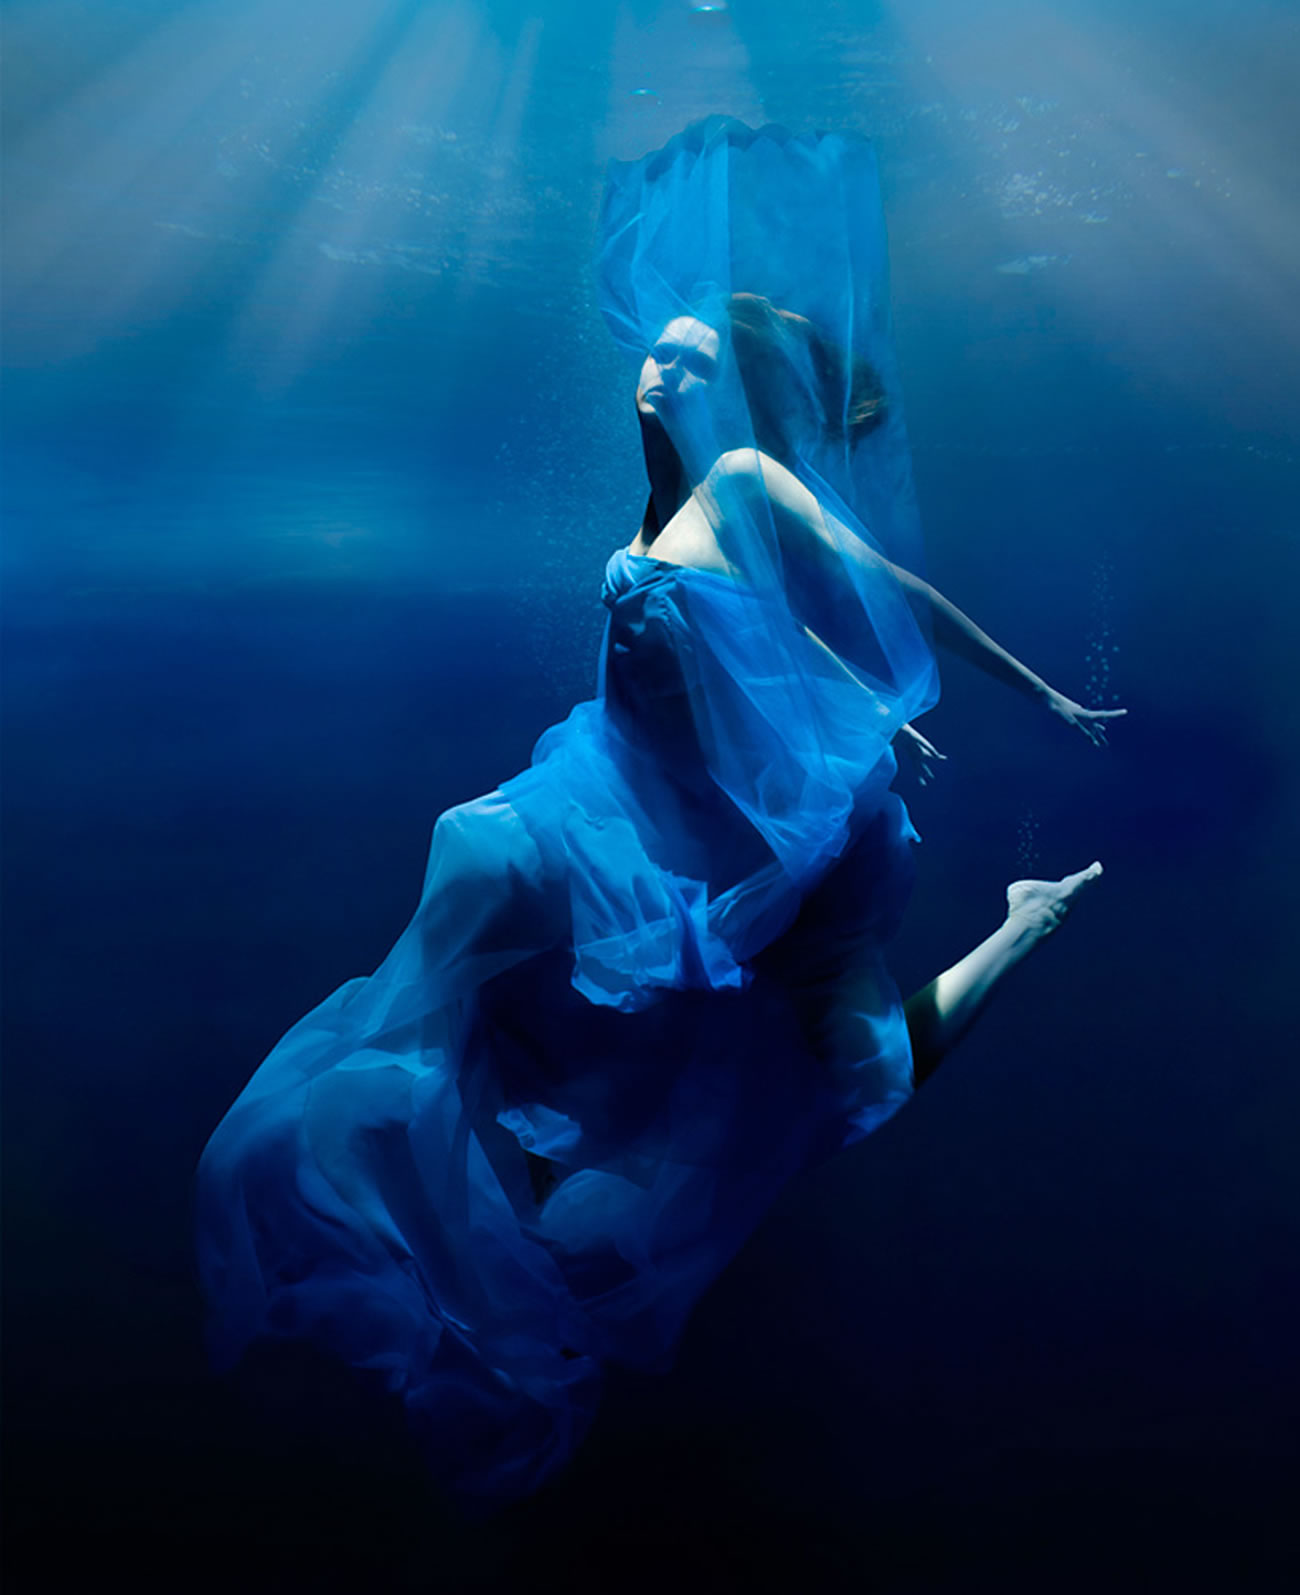 woman underwater, blue dress, photography by Patrick Curtet